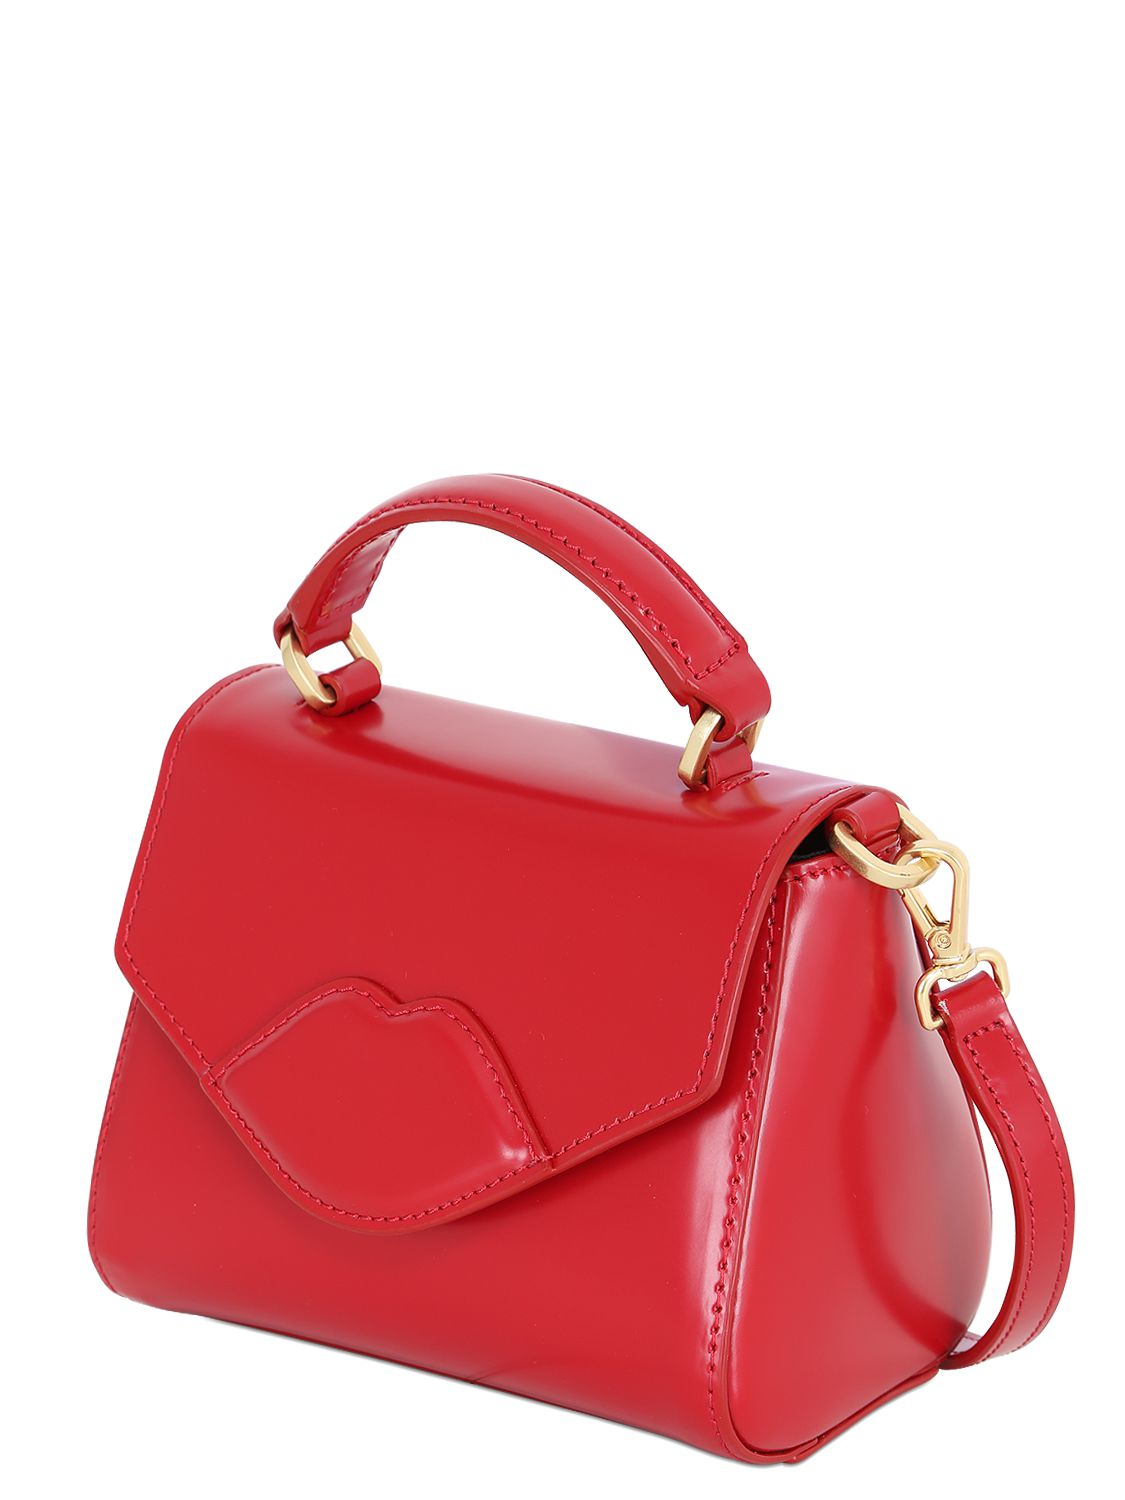 4094573b10 Lyst - Lulu Guinness Mini Izzy Polished Leather Shoulder Bag in Red